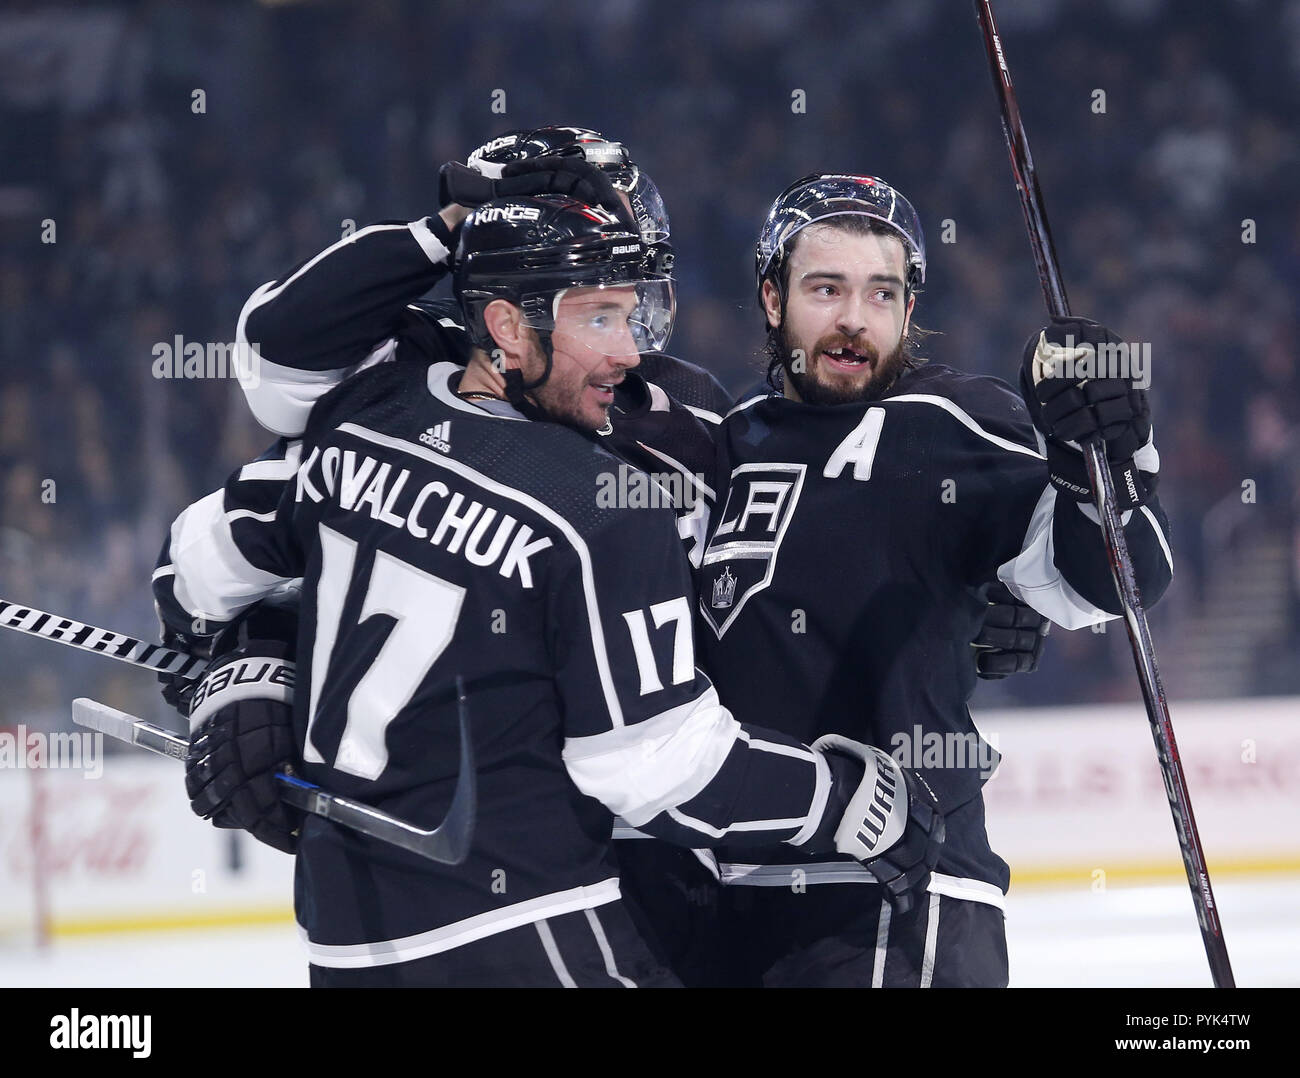 Ilya Kovalchuk Stock Photos   Ilya Kovalchuk Stock Images - Alamy 87ec28d25